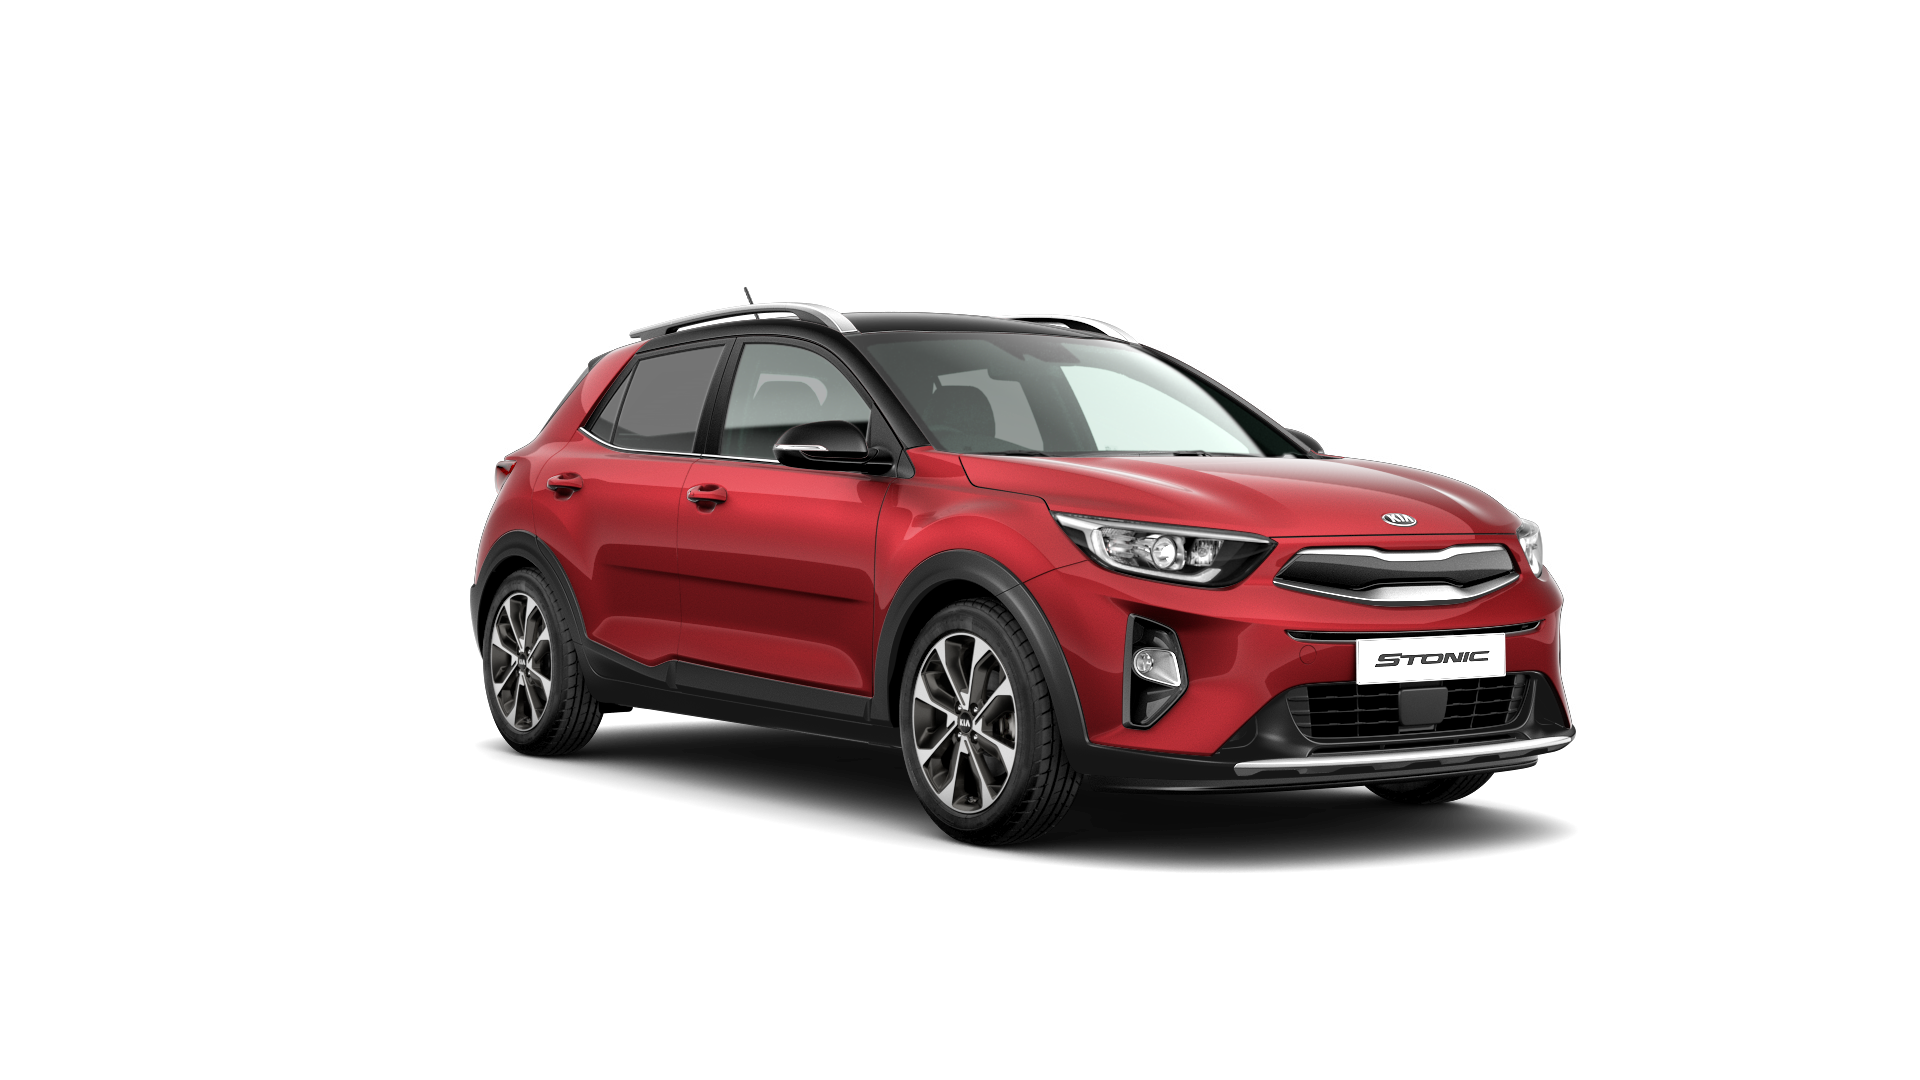 Kia Stonic First Edition - Blaze Red / Black